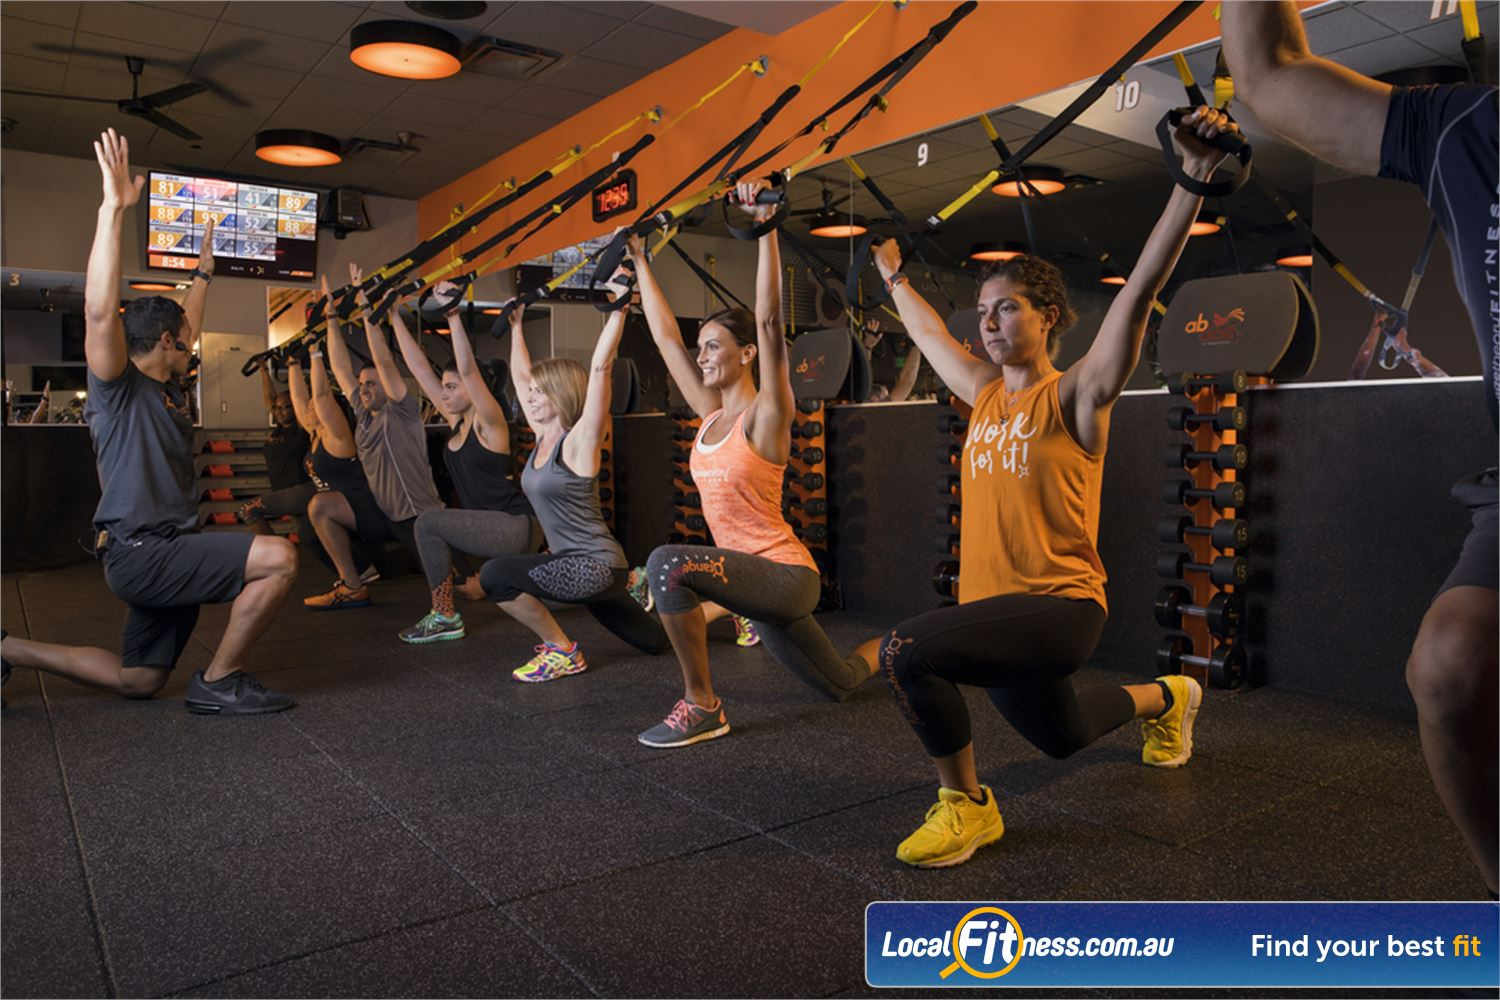 Orangetheory Fitness Hawthorn Our Hawthorn HIIT gym classes focus on getting you in the Orange Zone.